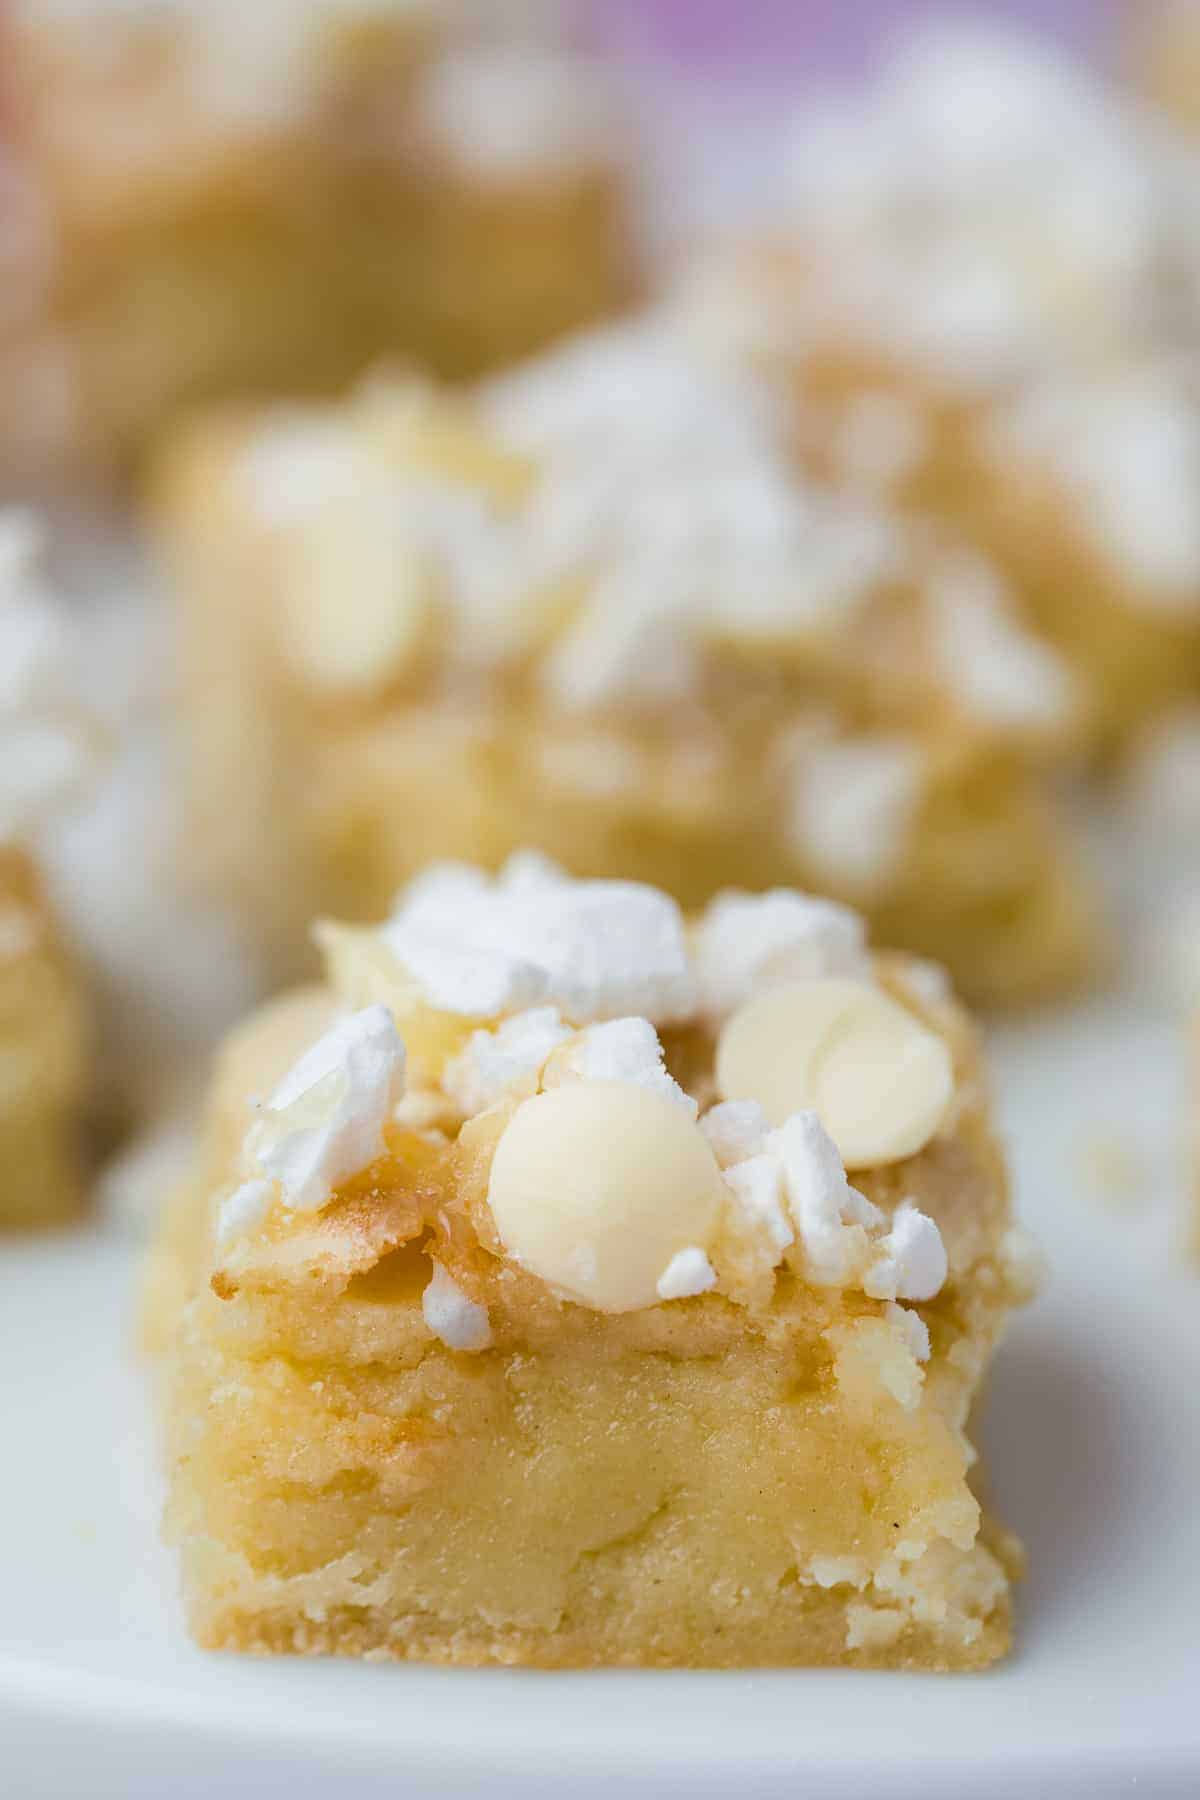 A gooey white chocolate blondie flavoured with lemon.